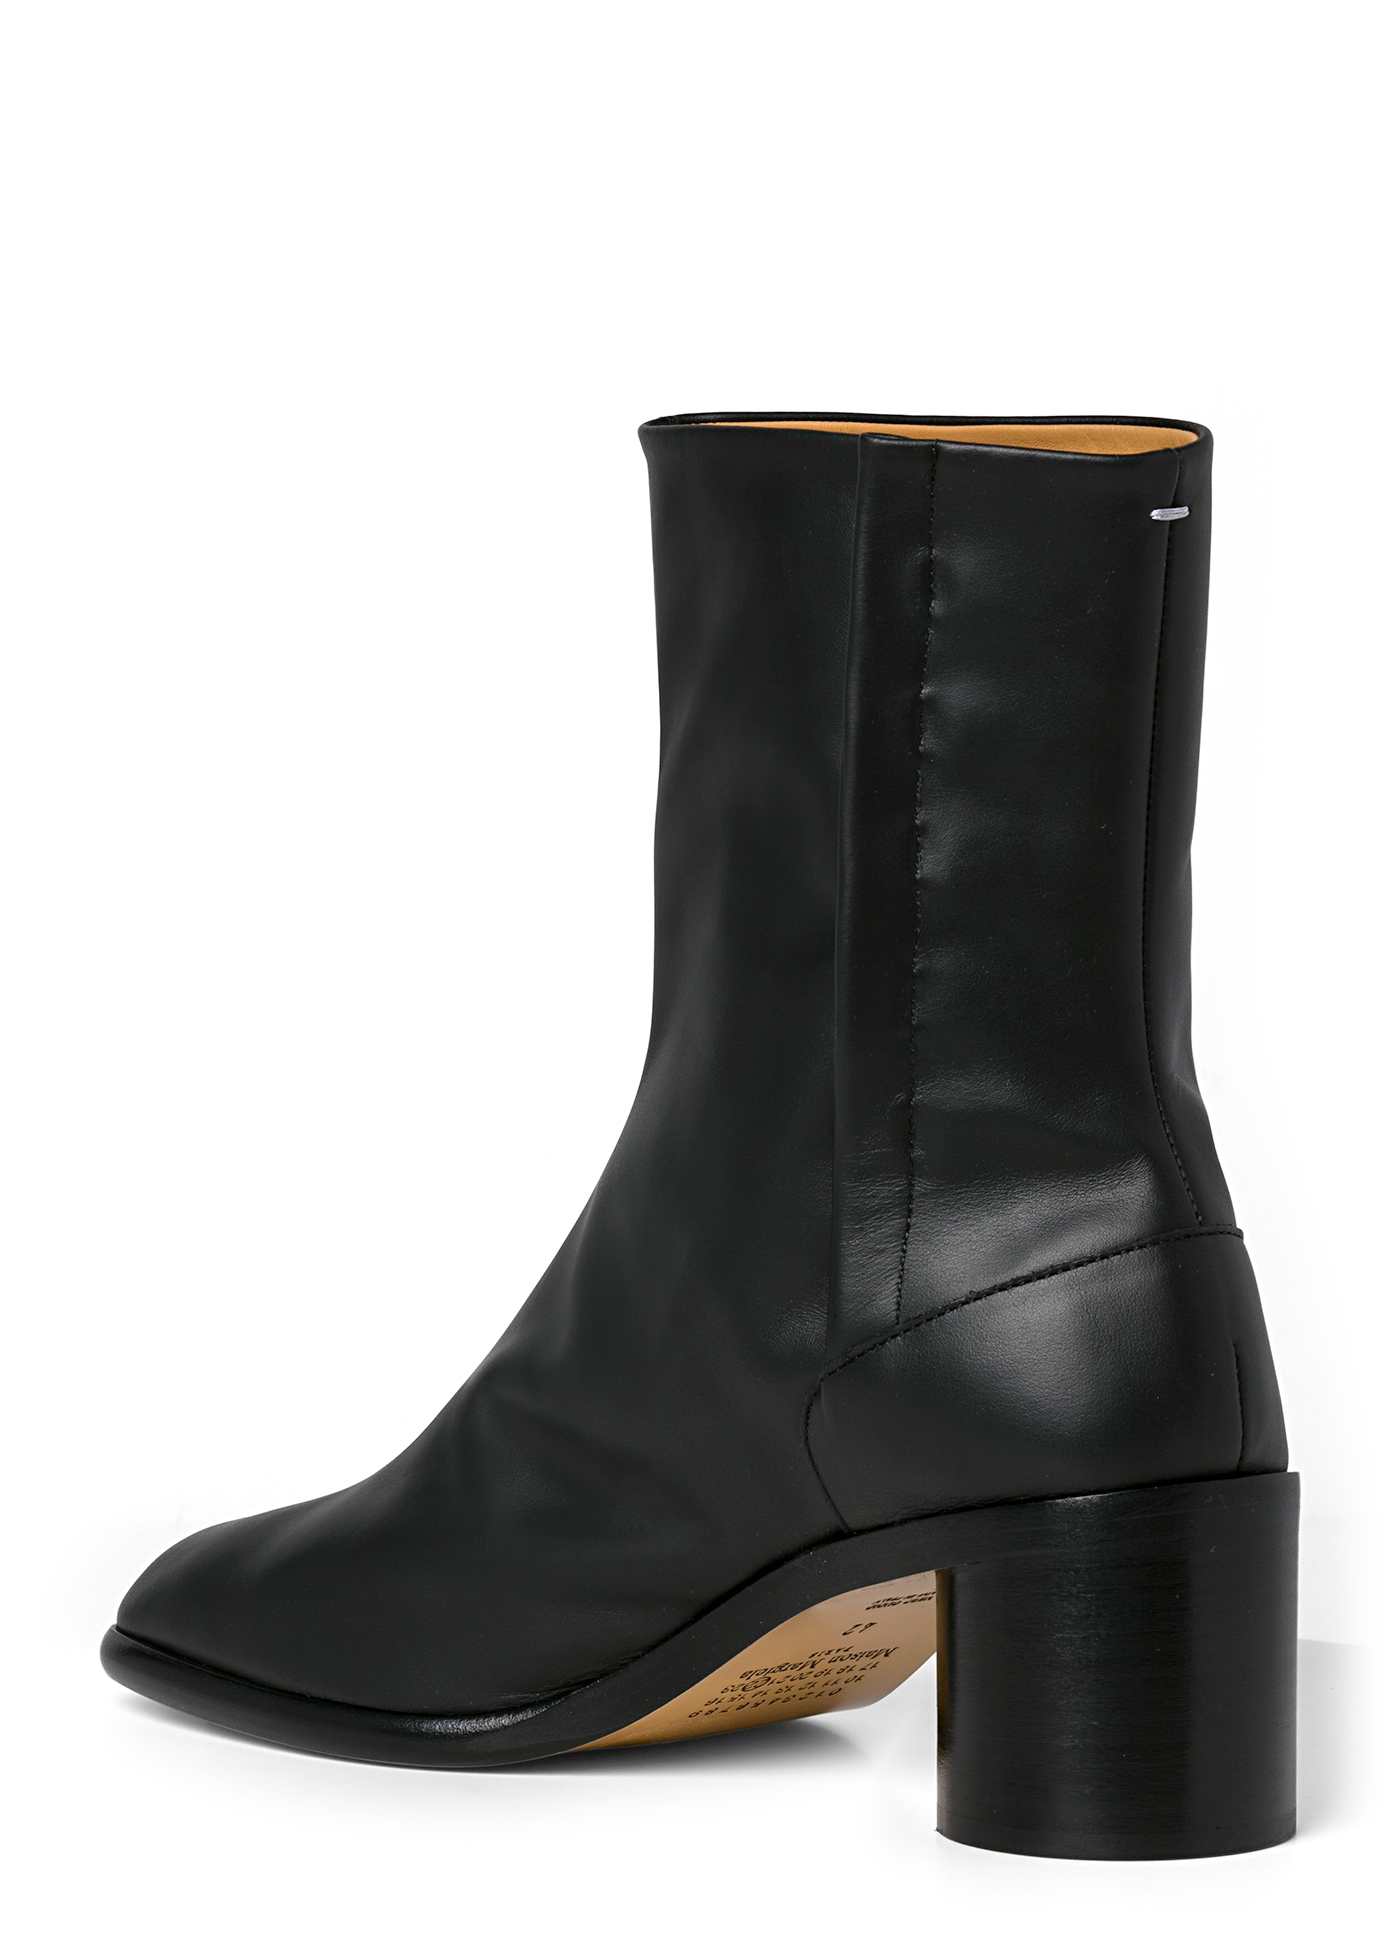 ANKLE BOOT image number 2